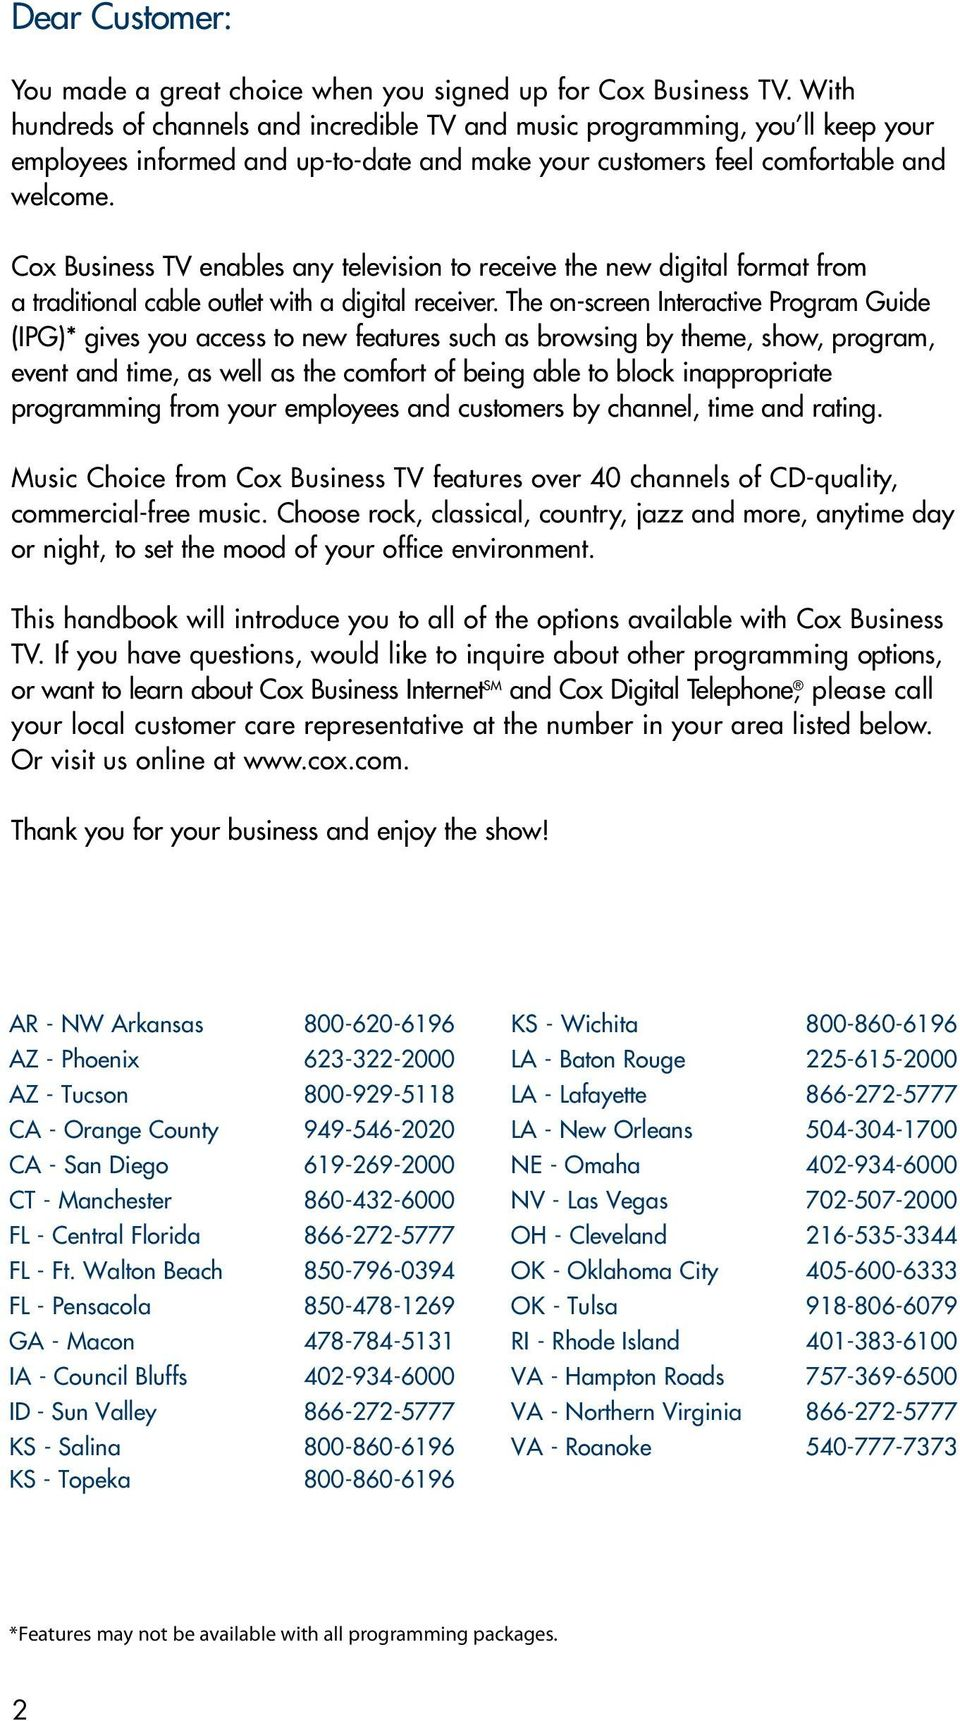 COX BUSINESS TV  Everything you need to know about Cox